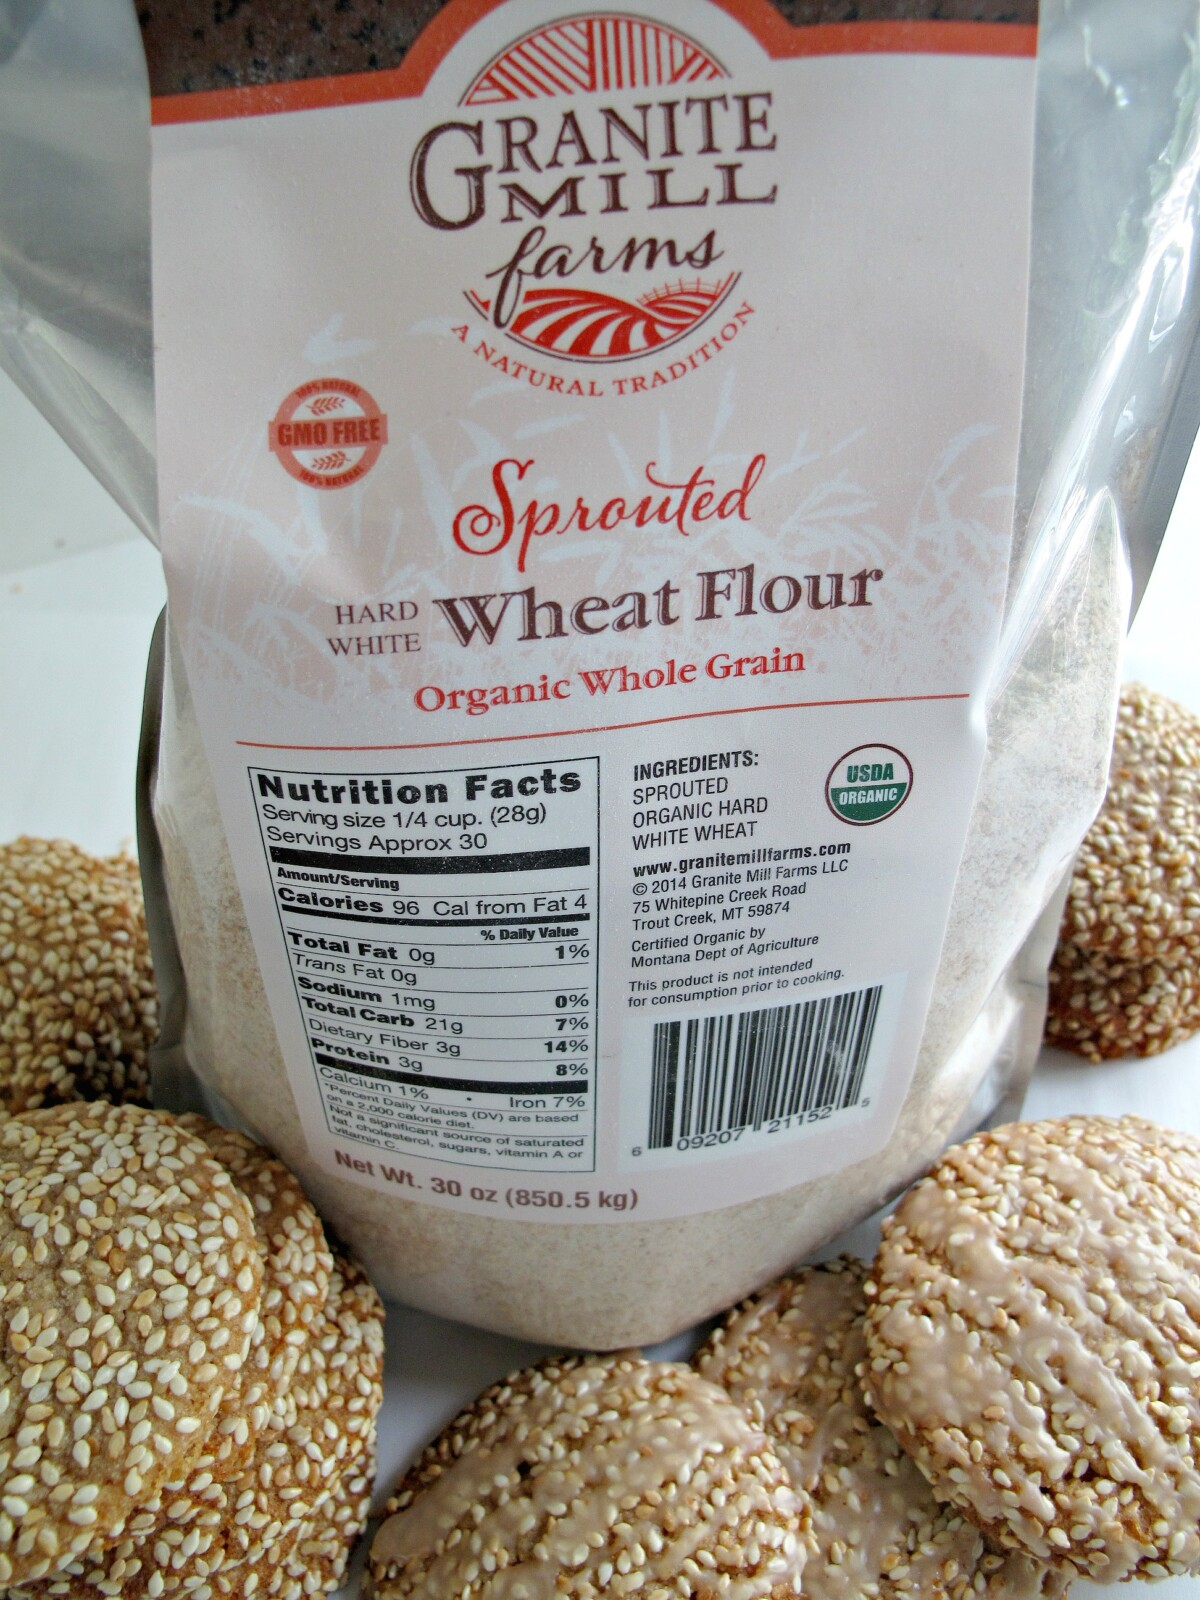 A bag of Granite Mill Farms wheat flour and some cookies.